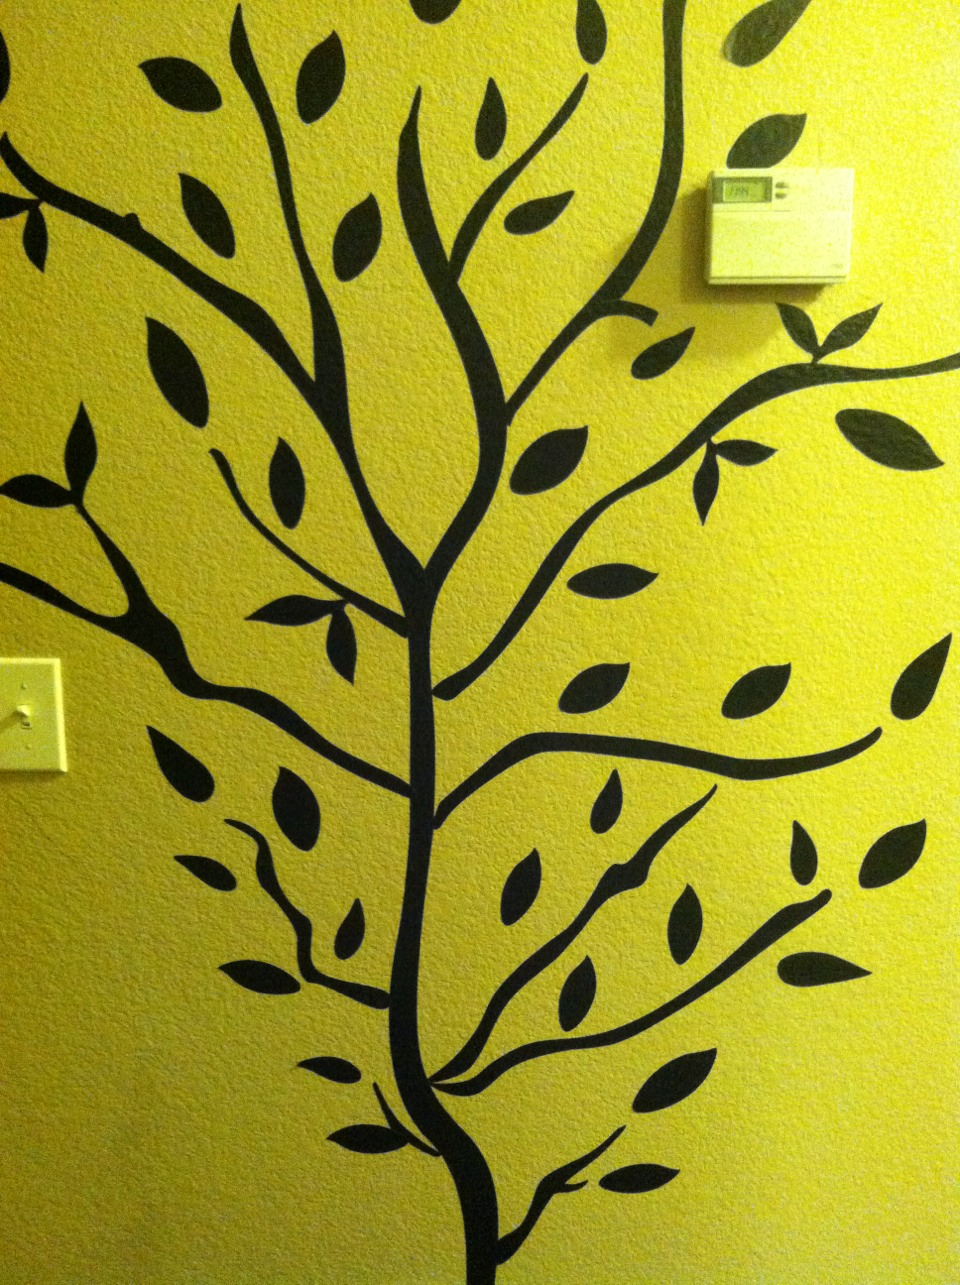 Just another wall decal tree shown